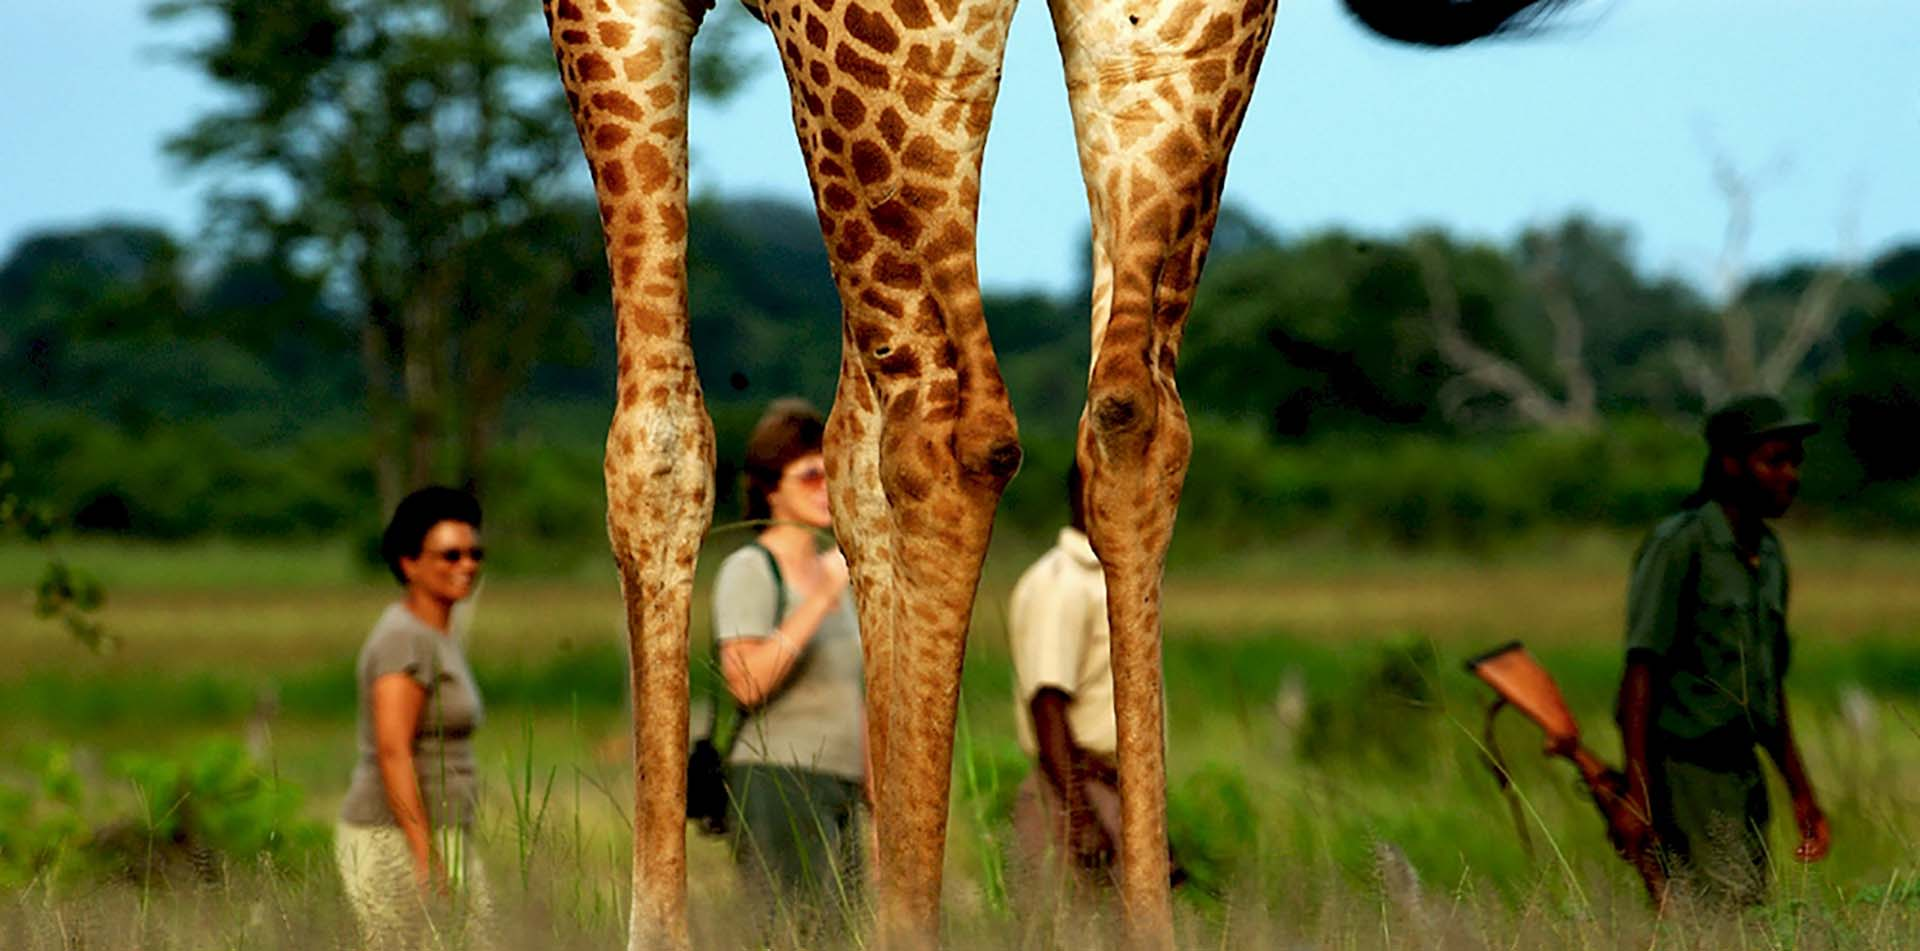 Africa Zambia tall giraffe legs wildlife safari nature group walking in remote lush jungle - luxury vacation destinations